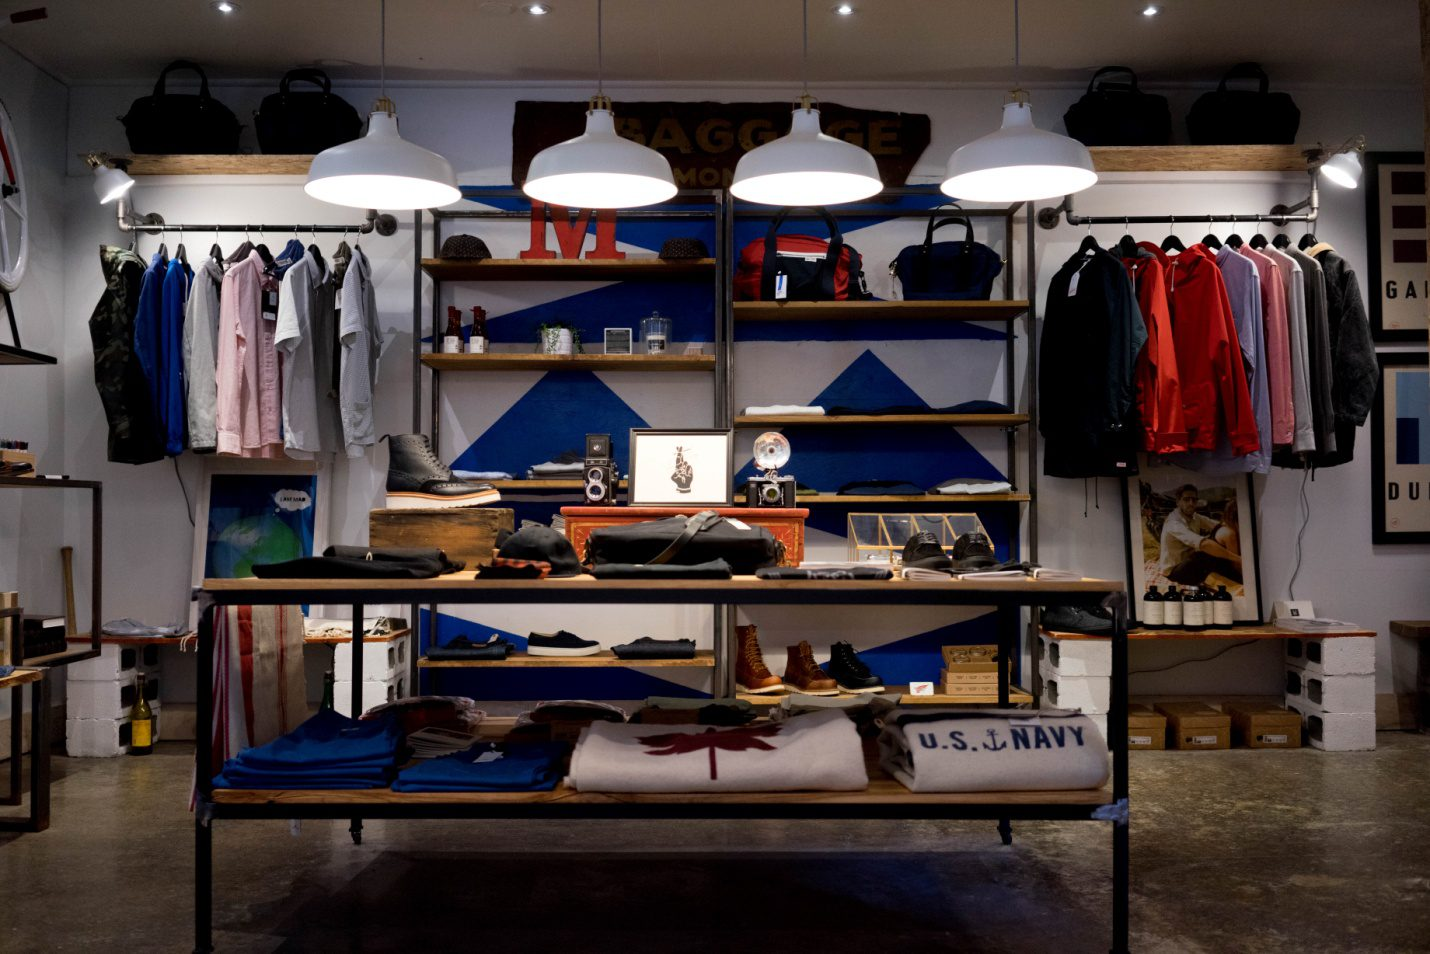 Lighting rules for retail stores